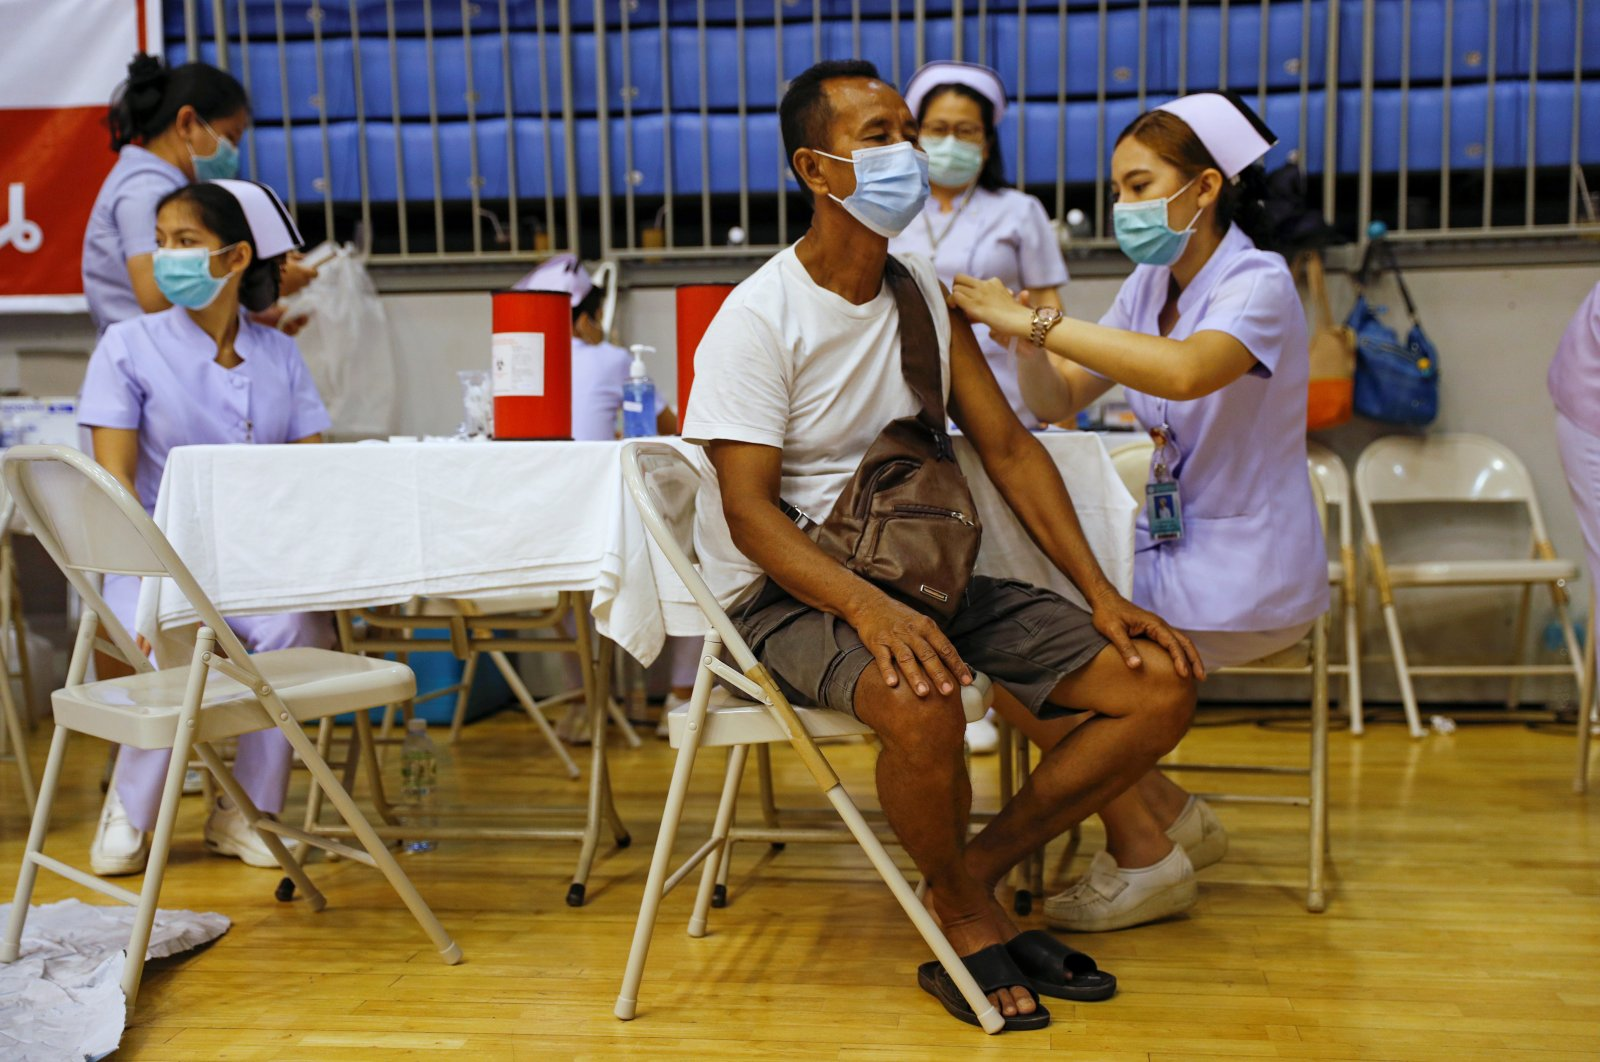 A man receives the Sinovac COVID-19 vaccine as the Thai resort island of Phuket rushes to vaccinate its population amid the coronavirus outbreak, and ahead of a July 1 ending of strict quarantine for overseas visitors, to bring back tourism revenue in Phuket, Thailand, April 1, 2021. (Reuters Photo)